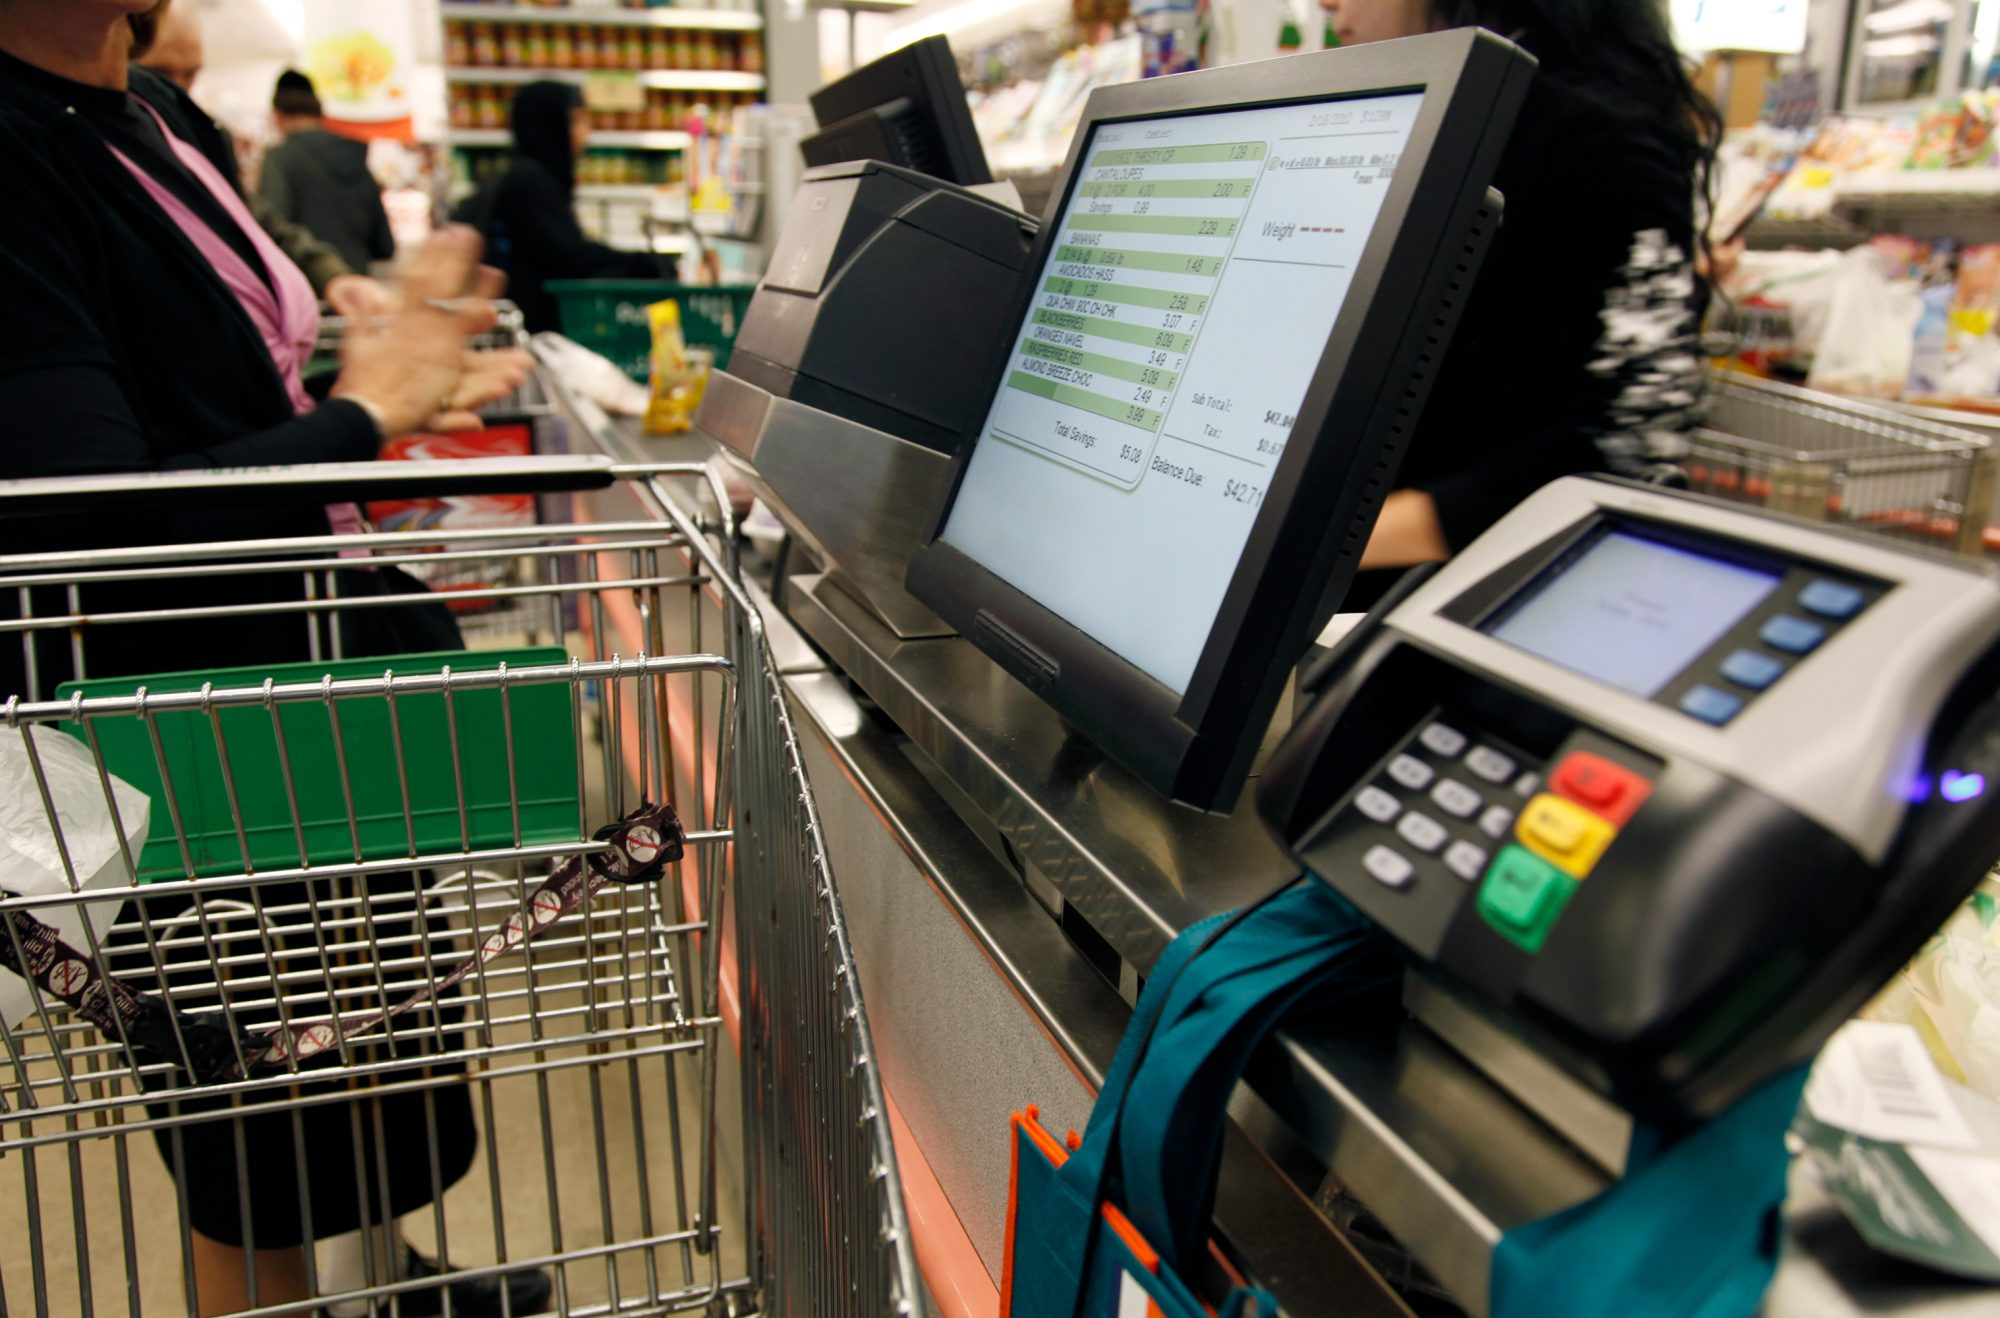 A person at the cash register of a supermarket